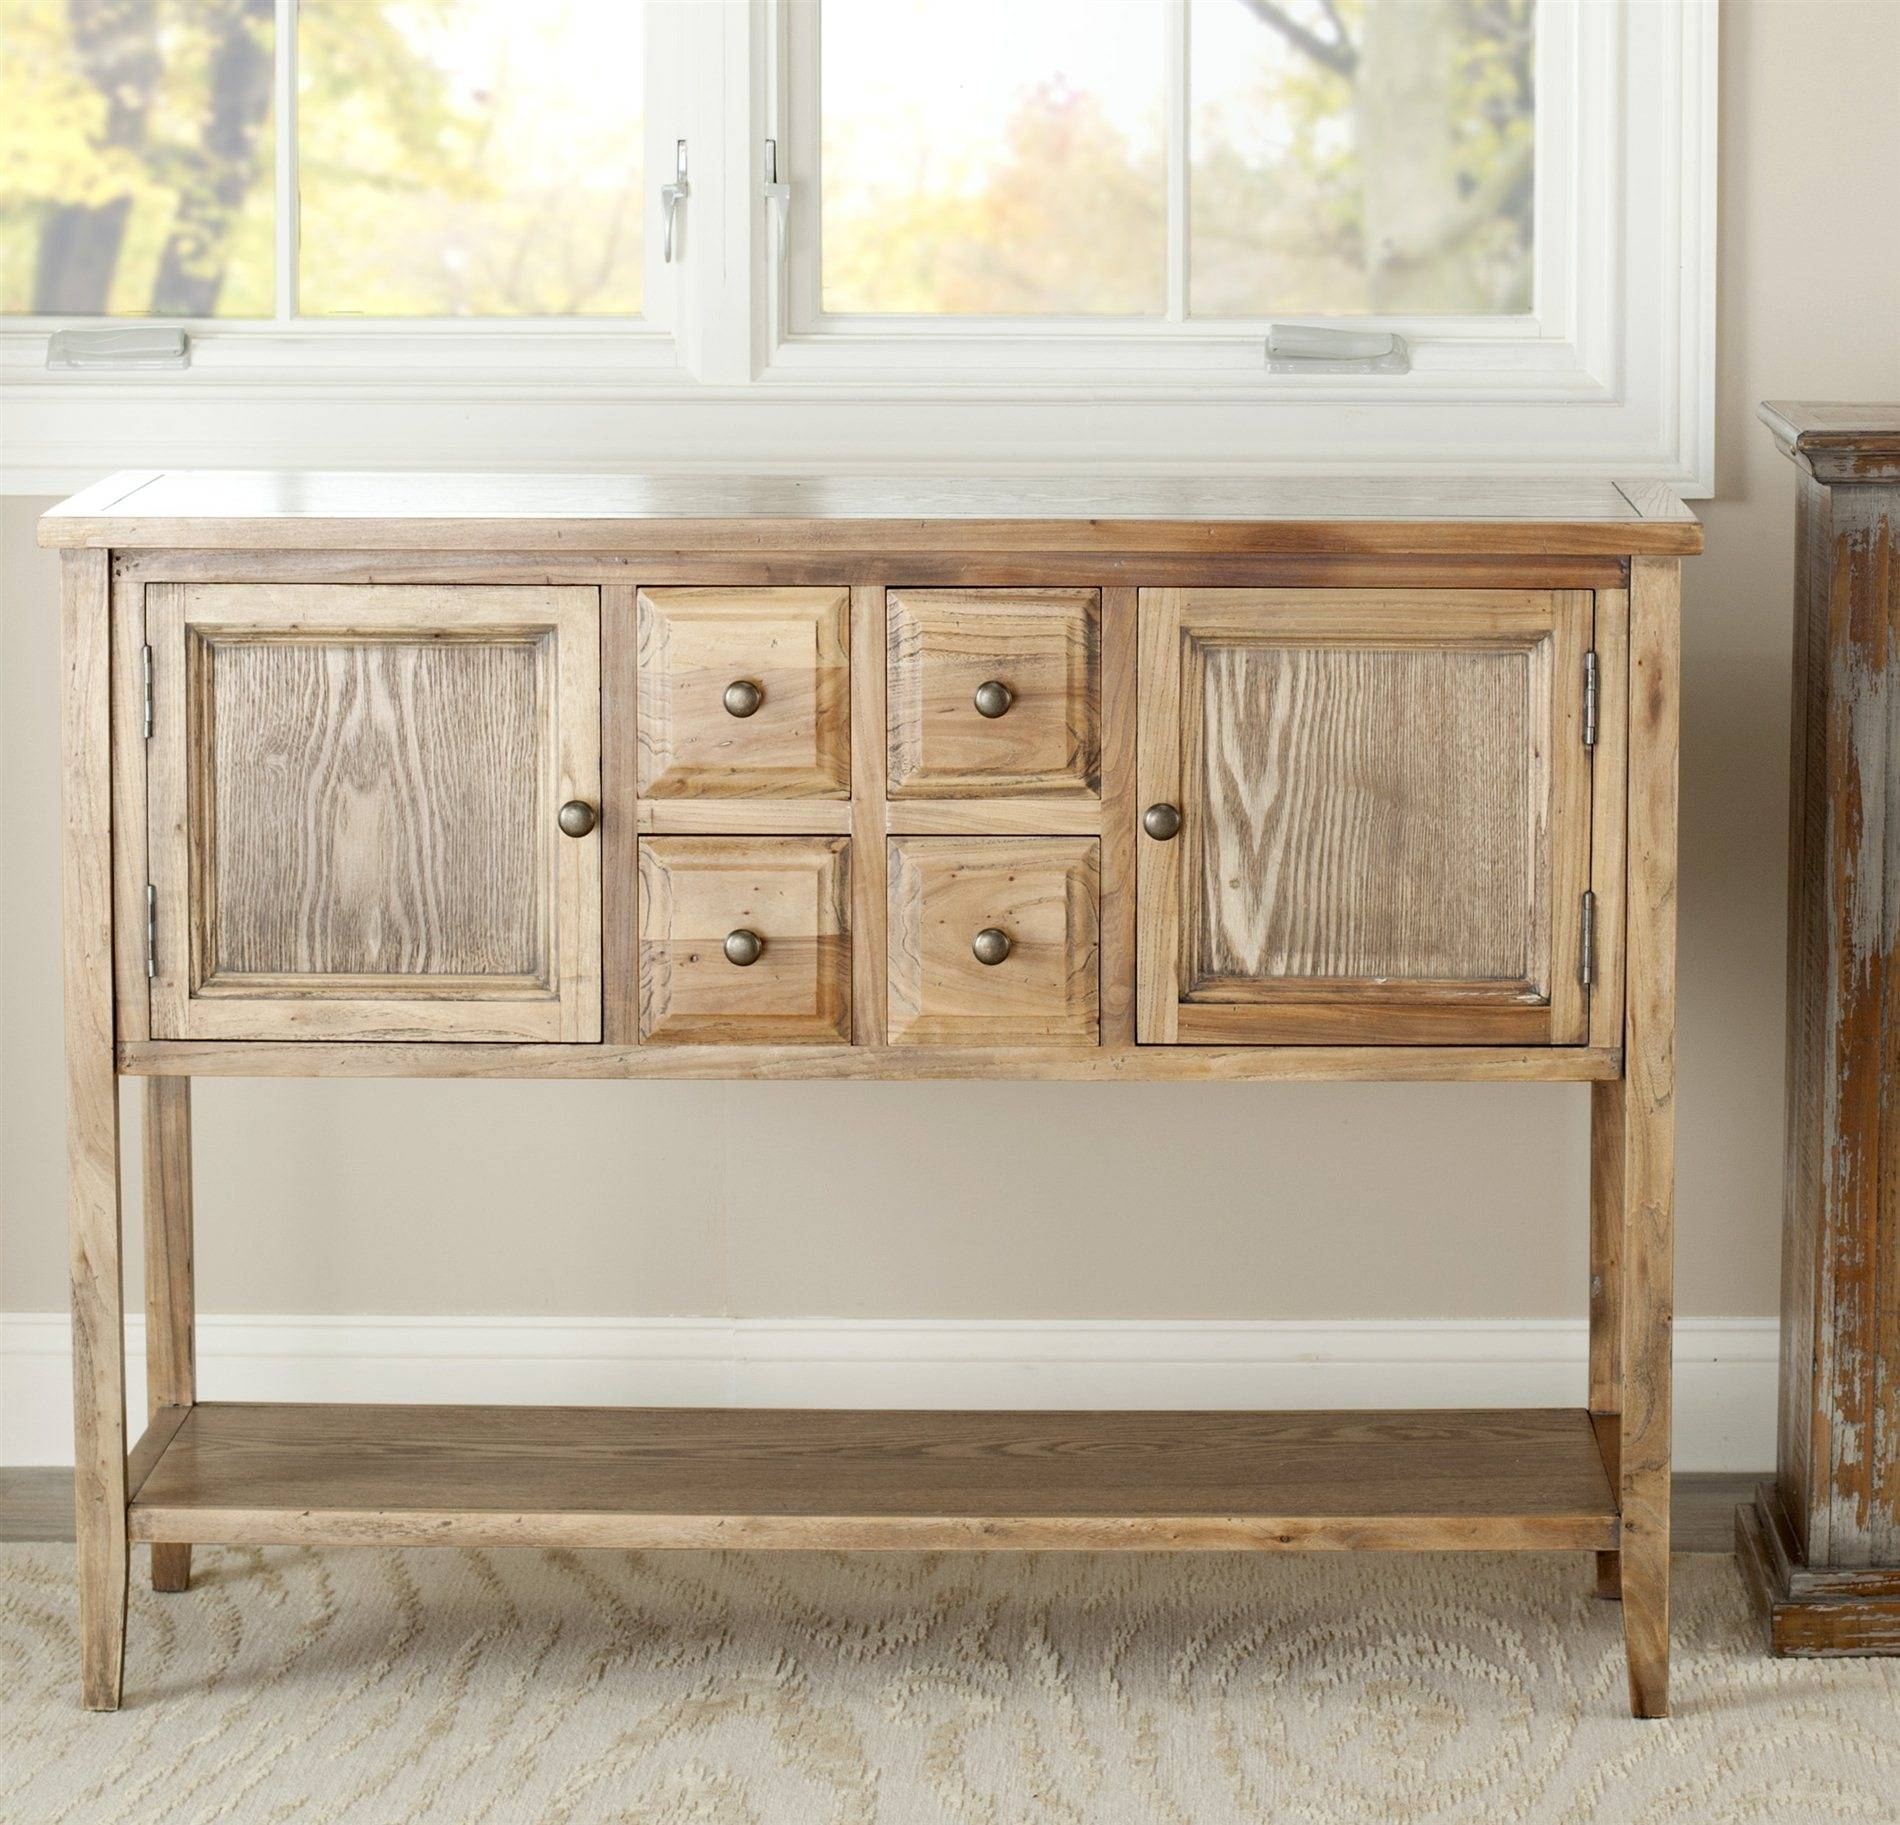 Safavieh Amh6517a Charlotte Sideboard Sfv Amh6517a Intended For Safavieh Sideboards (View 4 of 15)